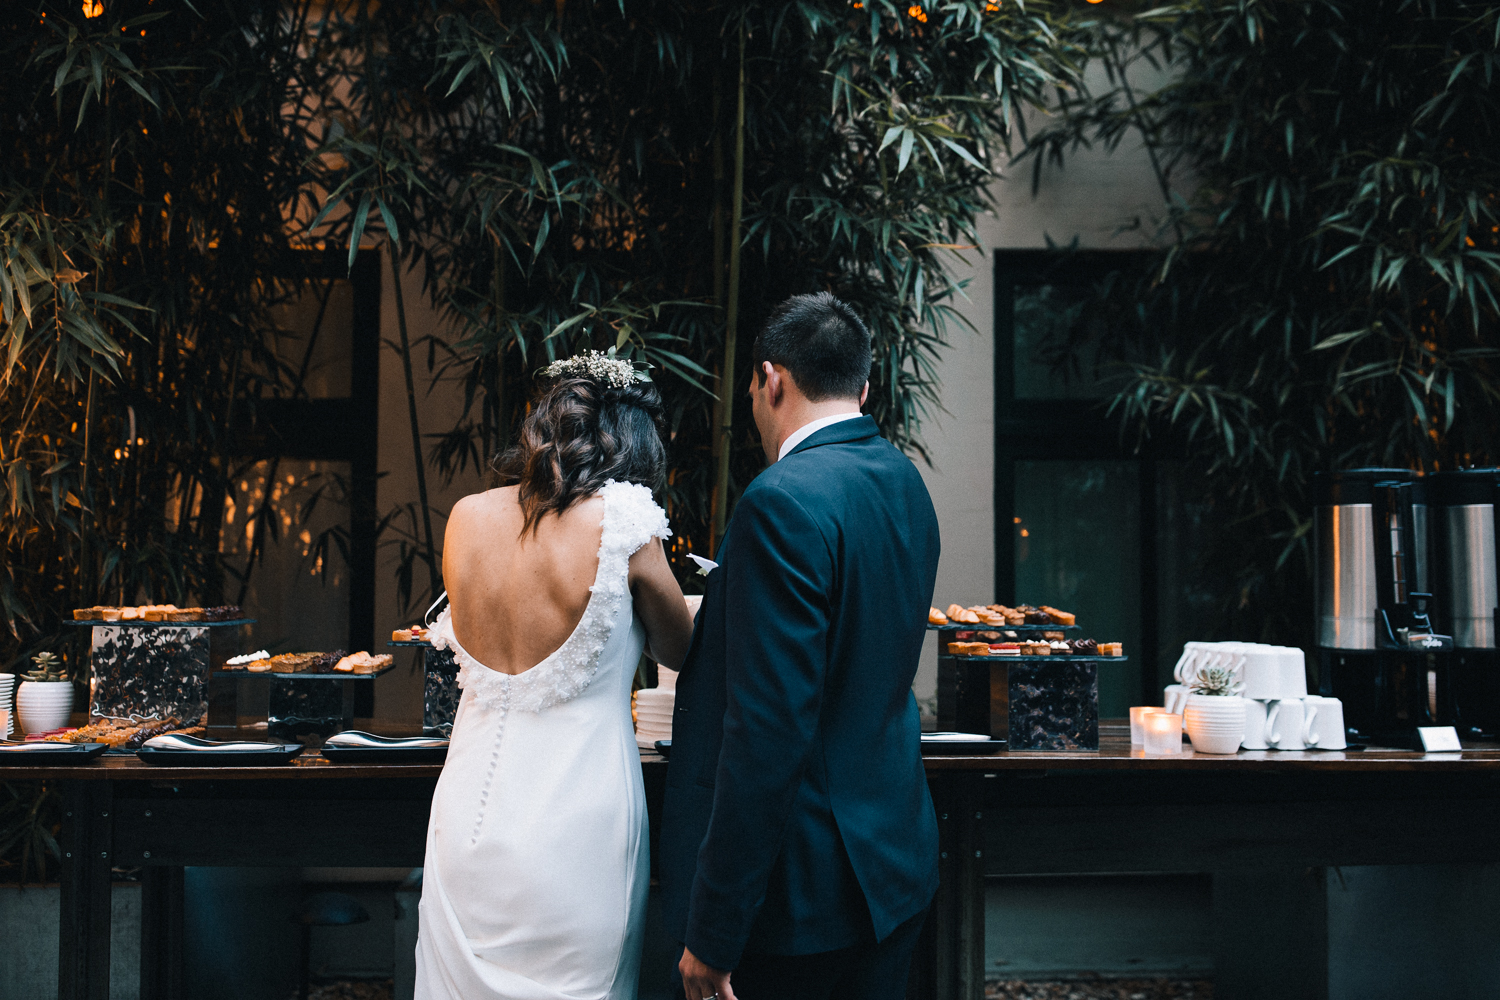 2019.06.01 Ana + Richard SF Wedding Blog Photos -1251.jpg